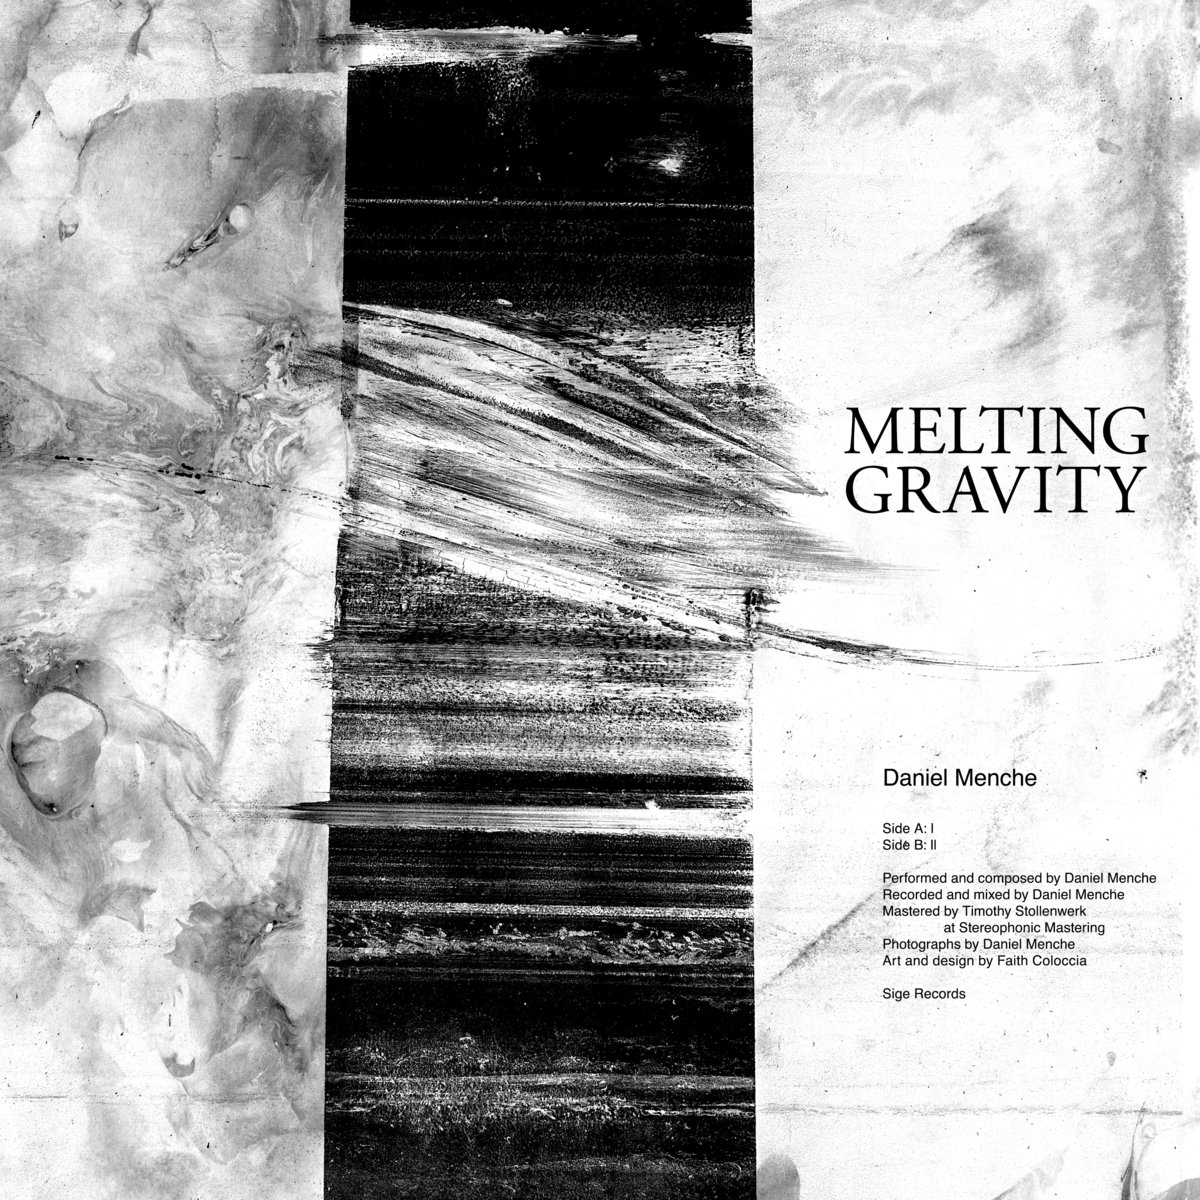 MELTING GRAVITY